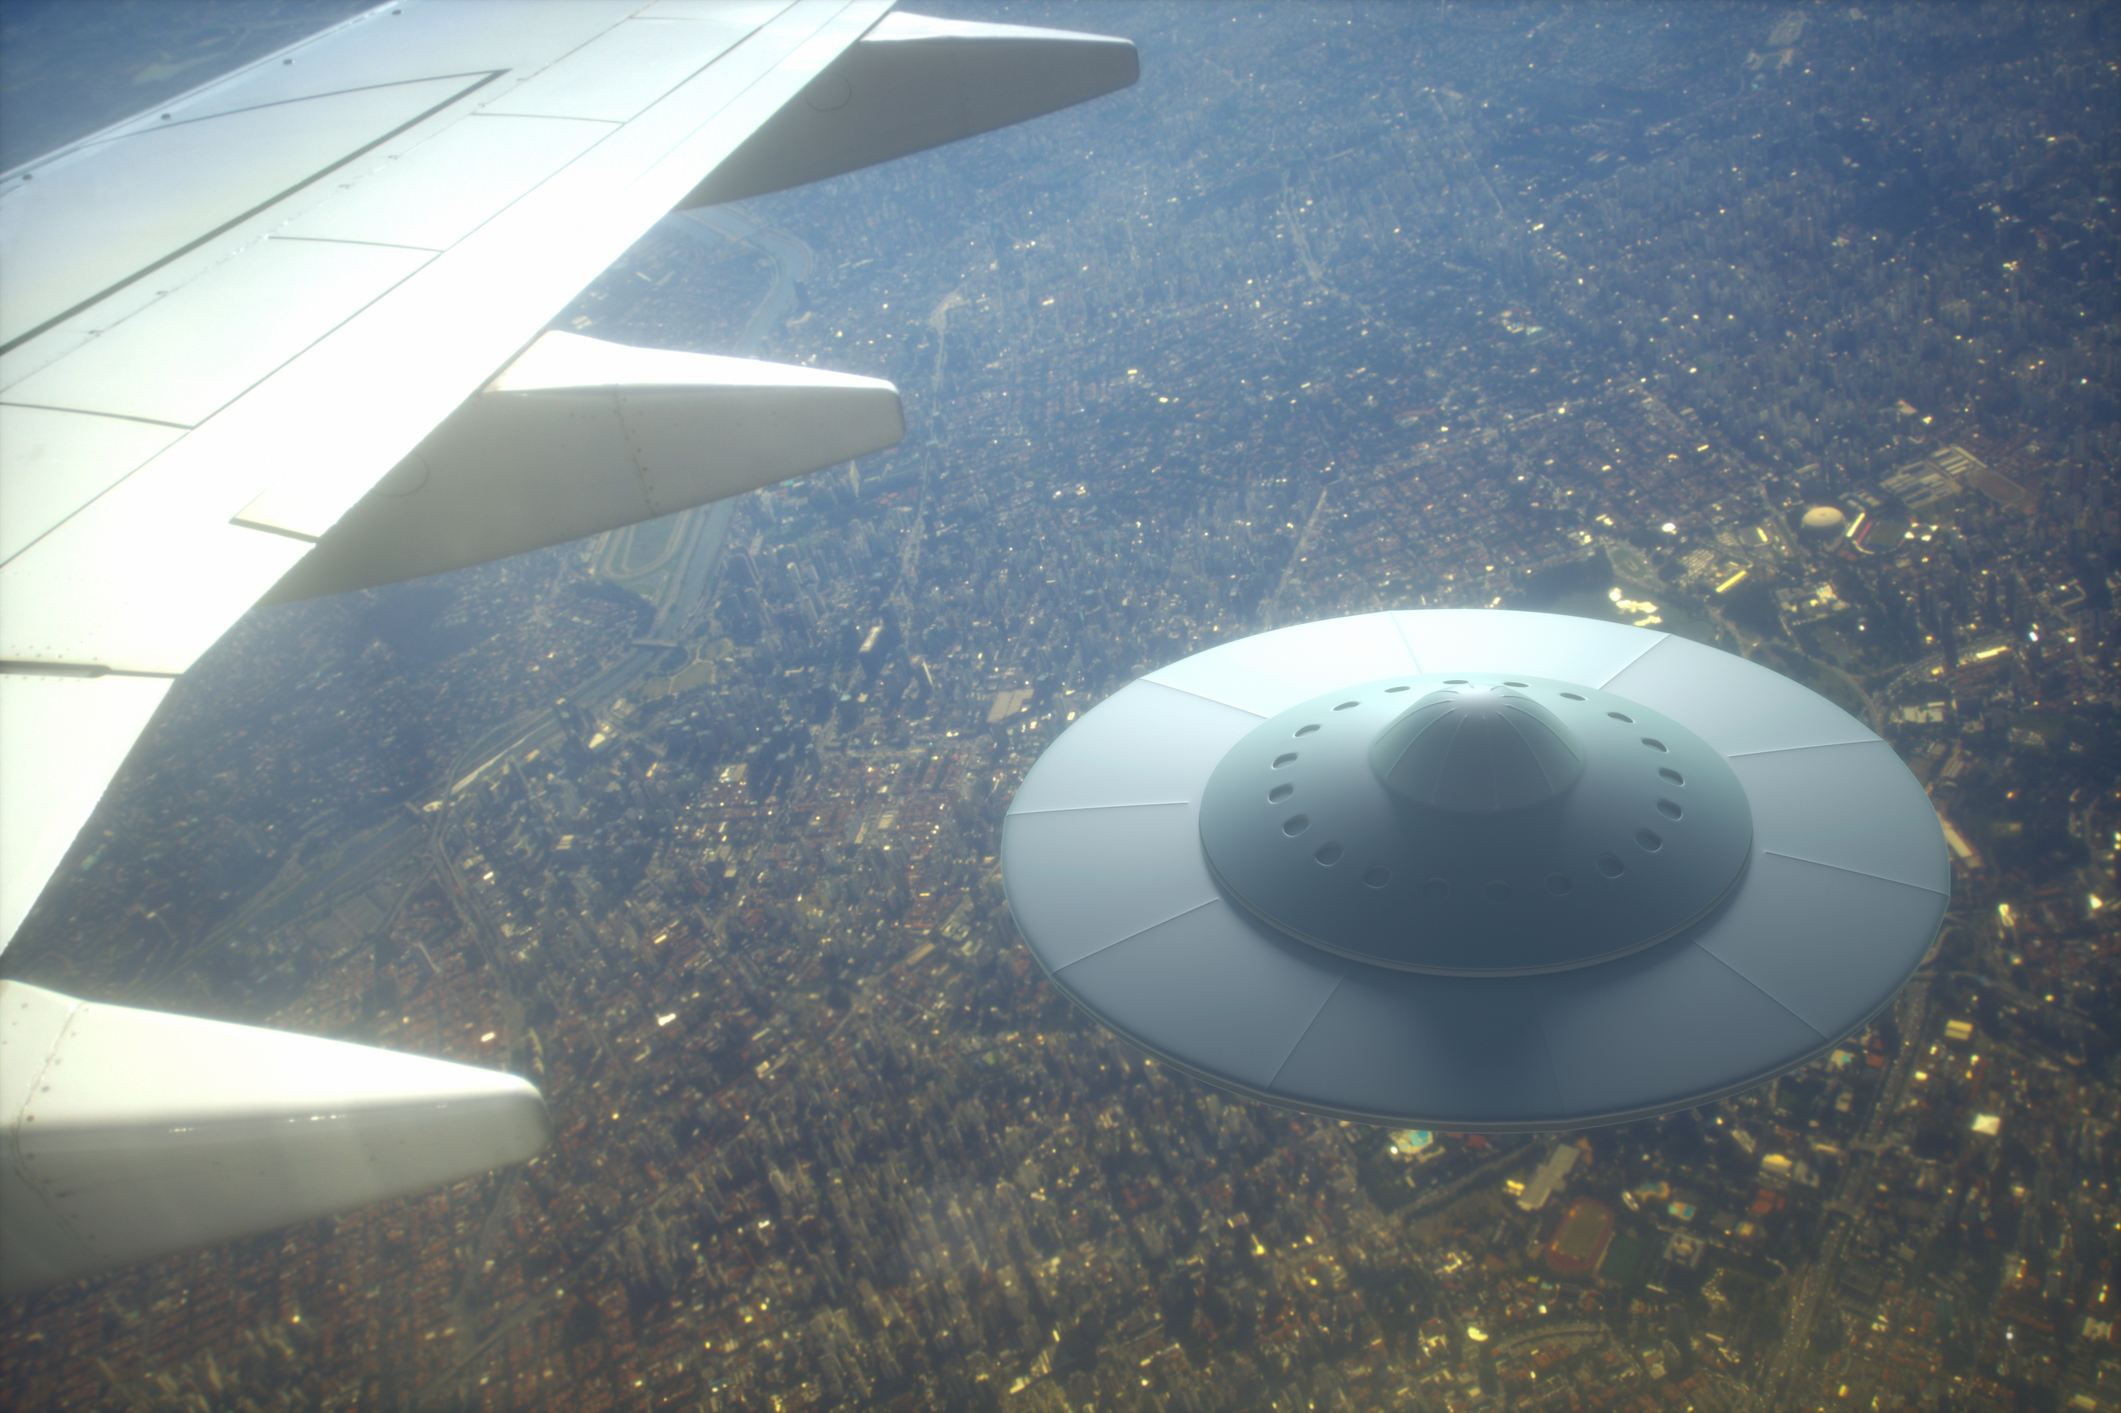 UFO flying below plane's wing